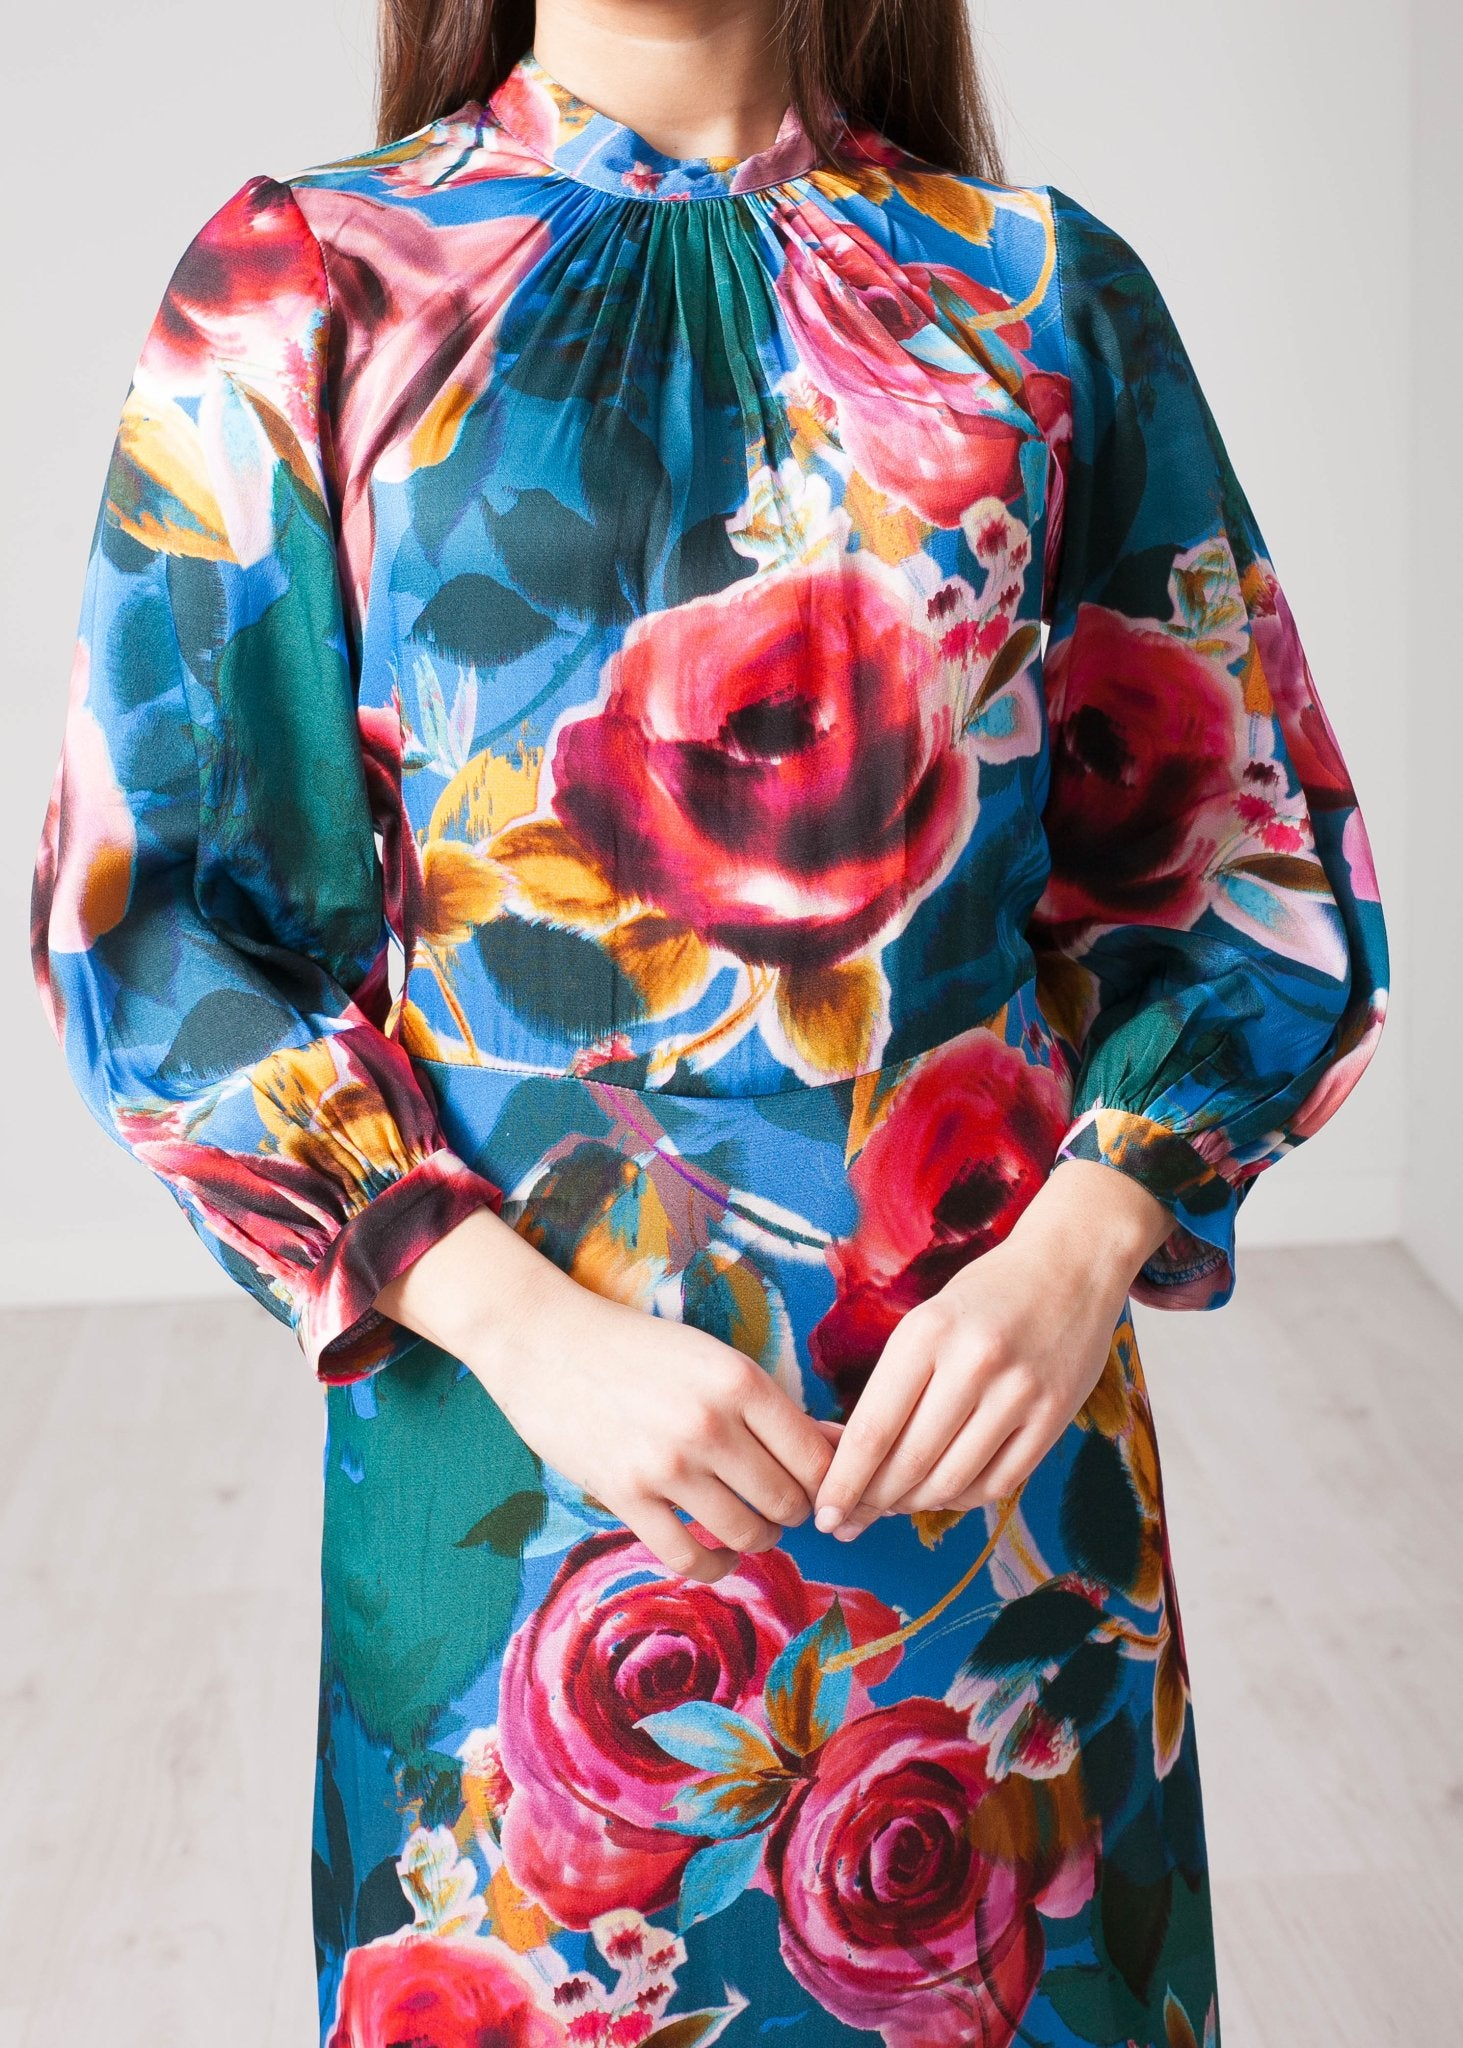 Cara Blue Floral Midi Dress - The Walk in Wardrobe